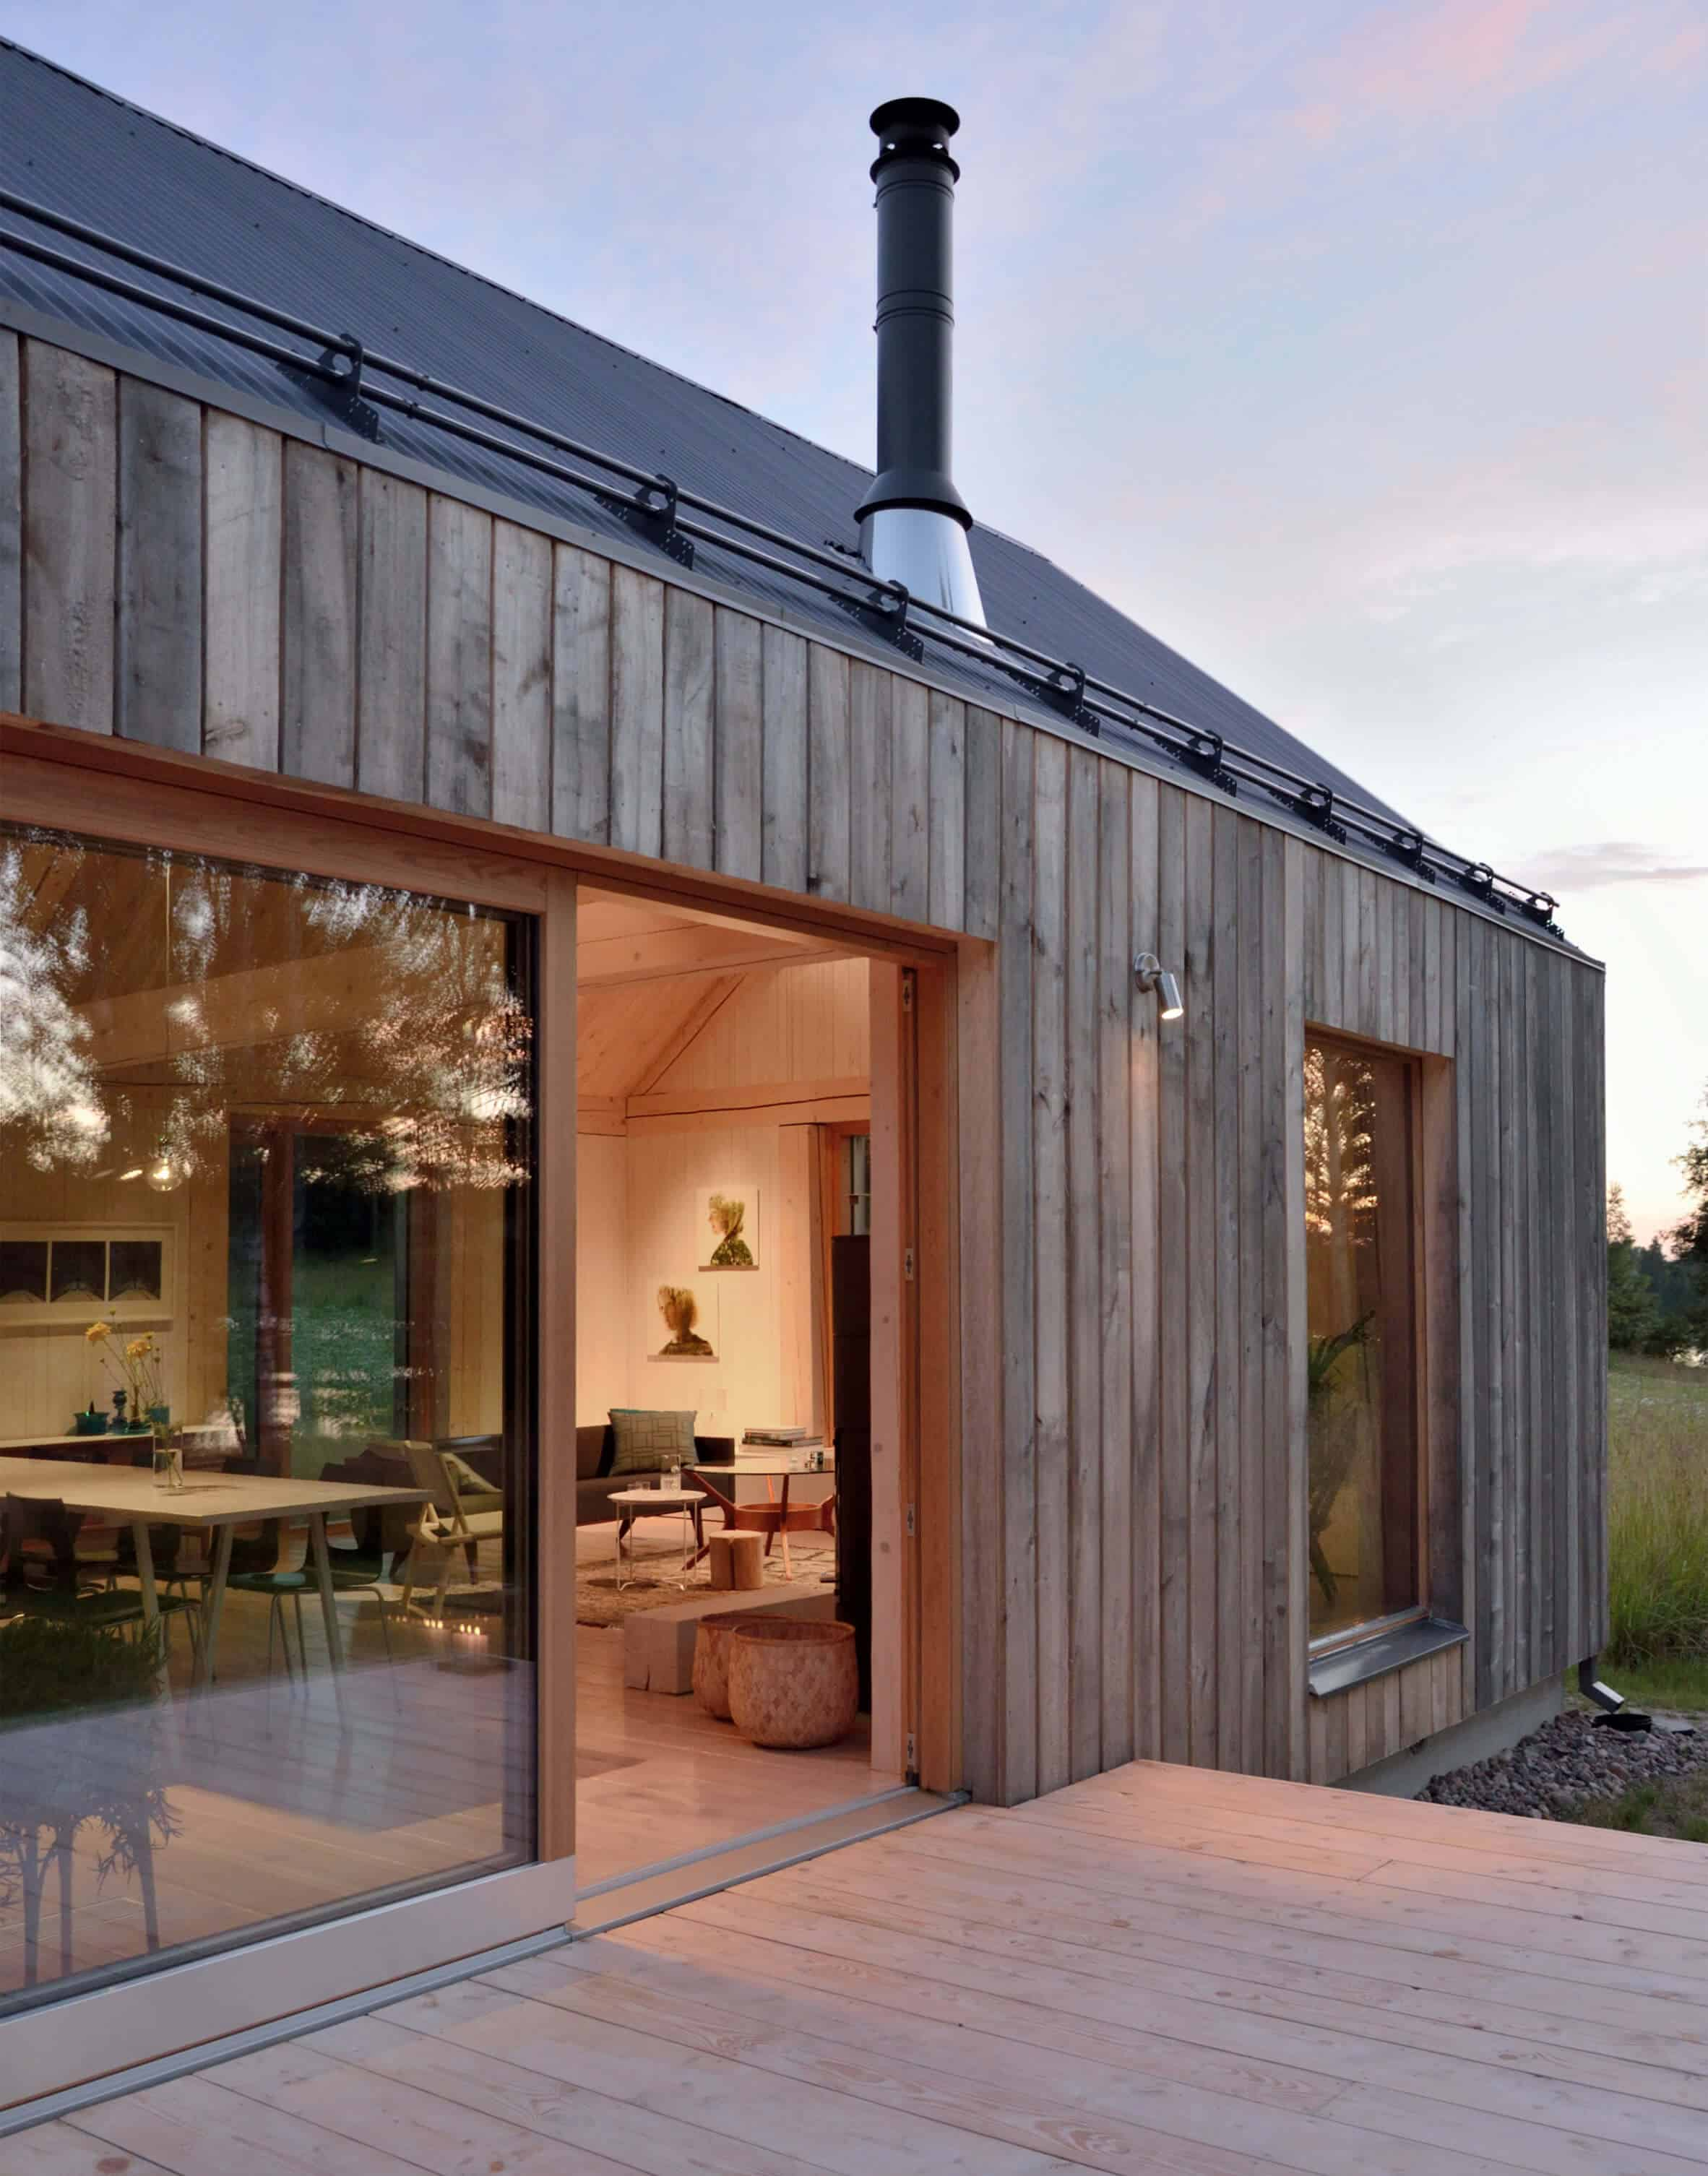 Iconic Simplicity in a Finnish LakeHouse by MNy Arkitekter (2)